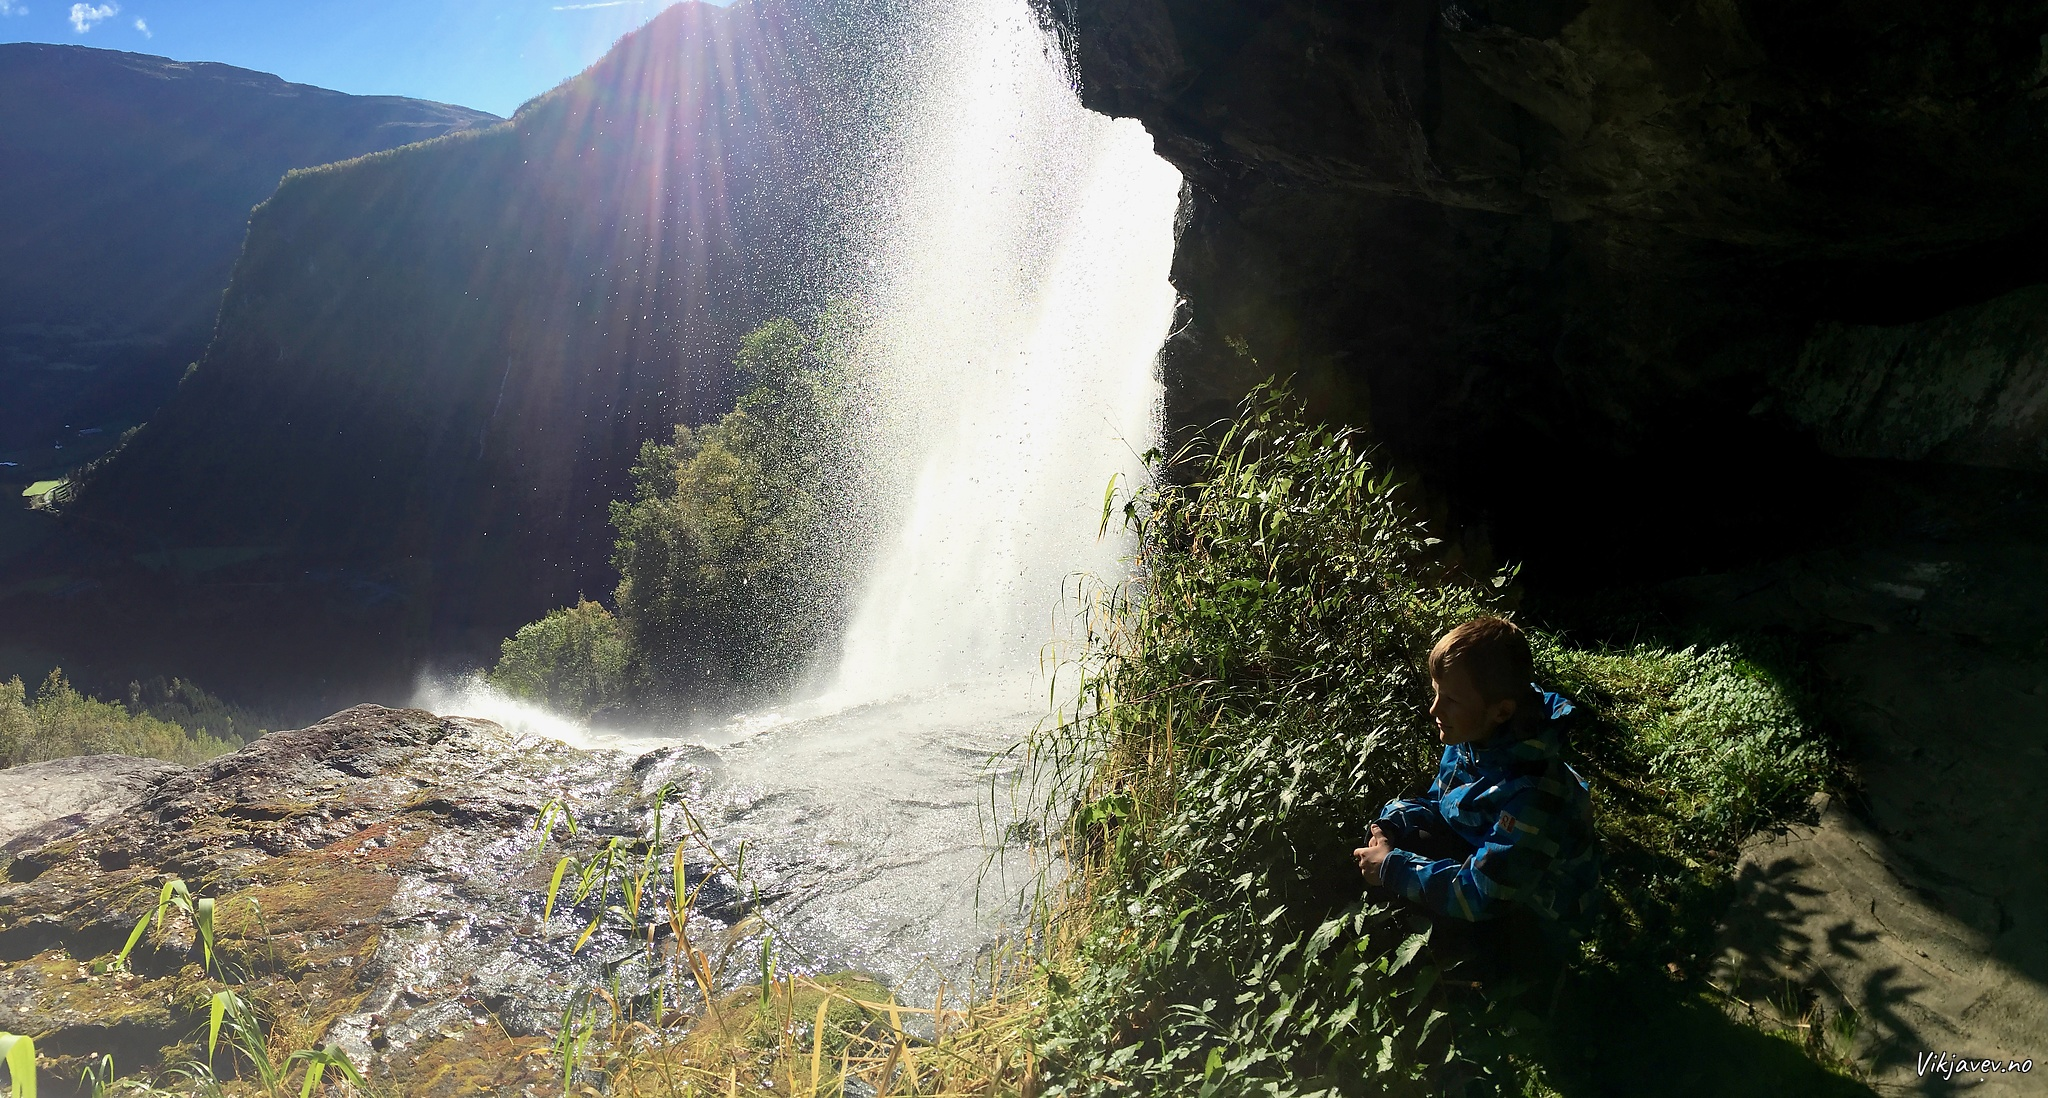 Under Haldorslifossen